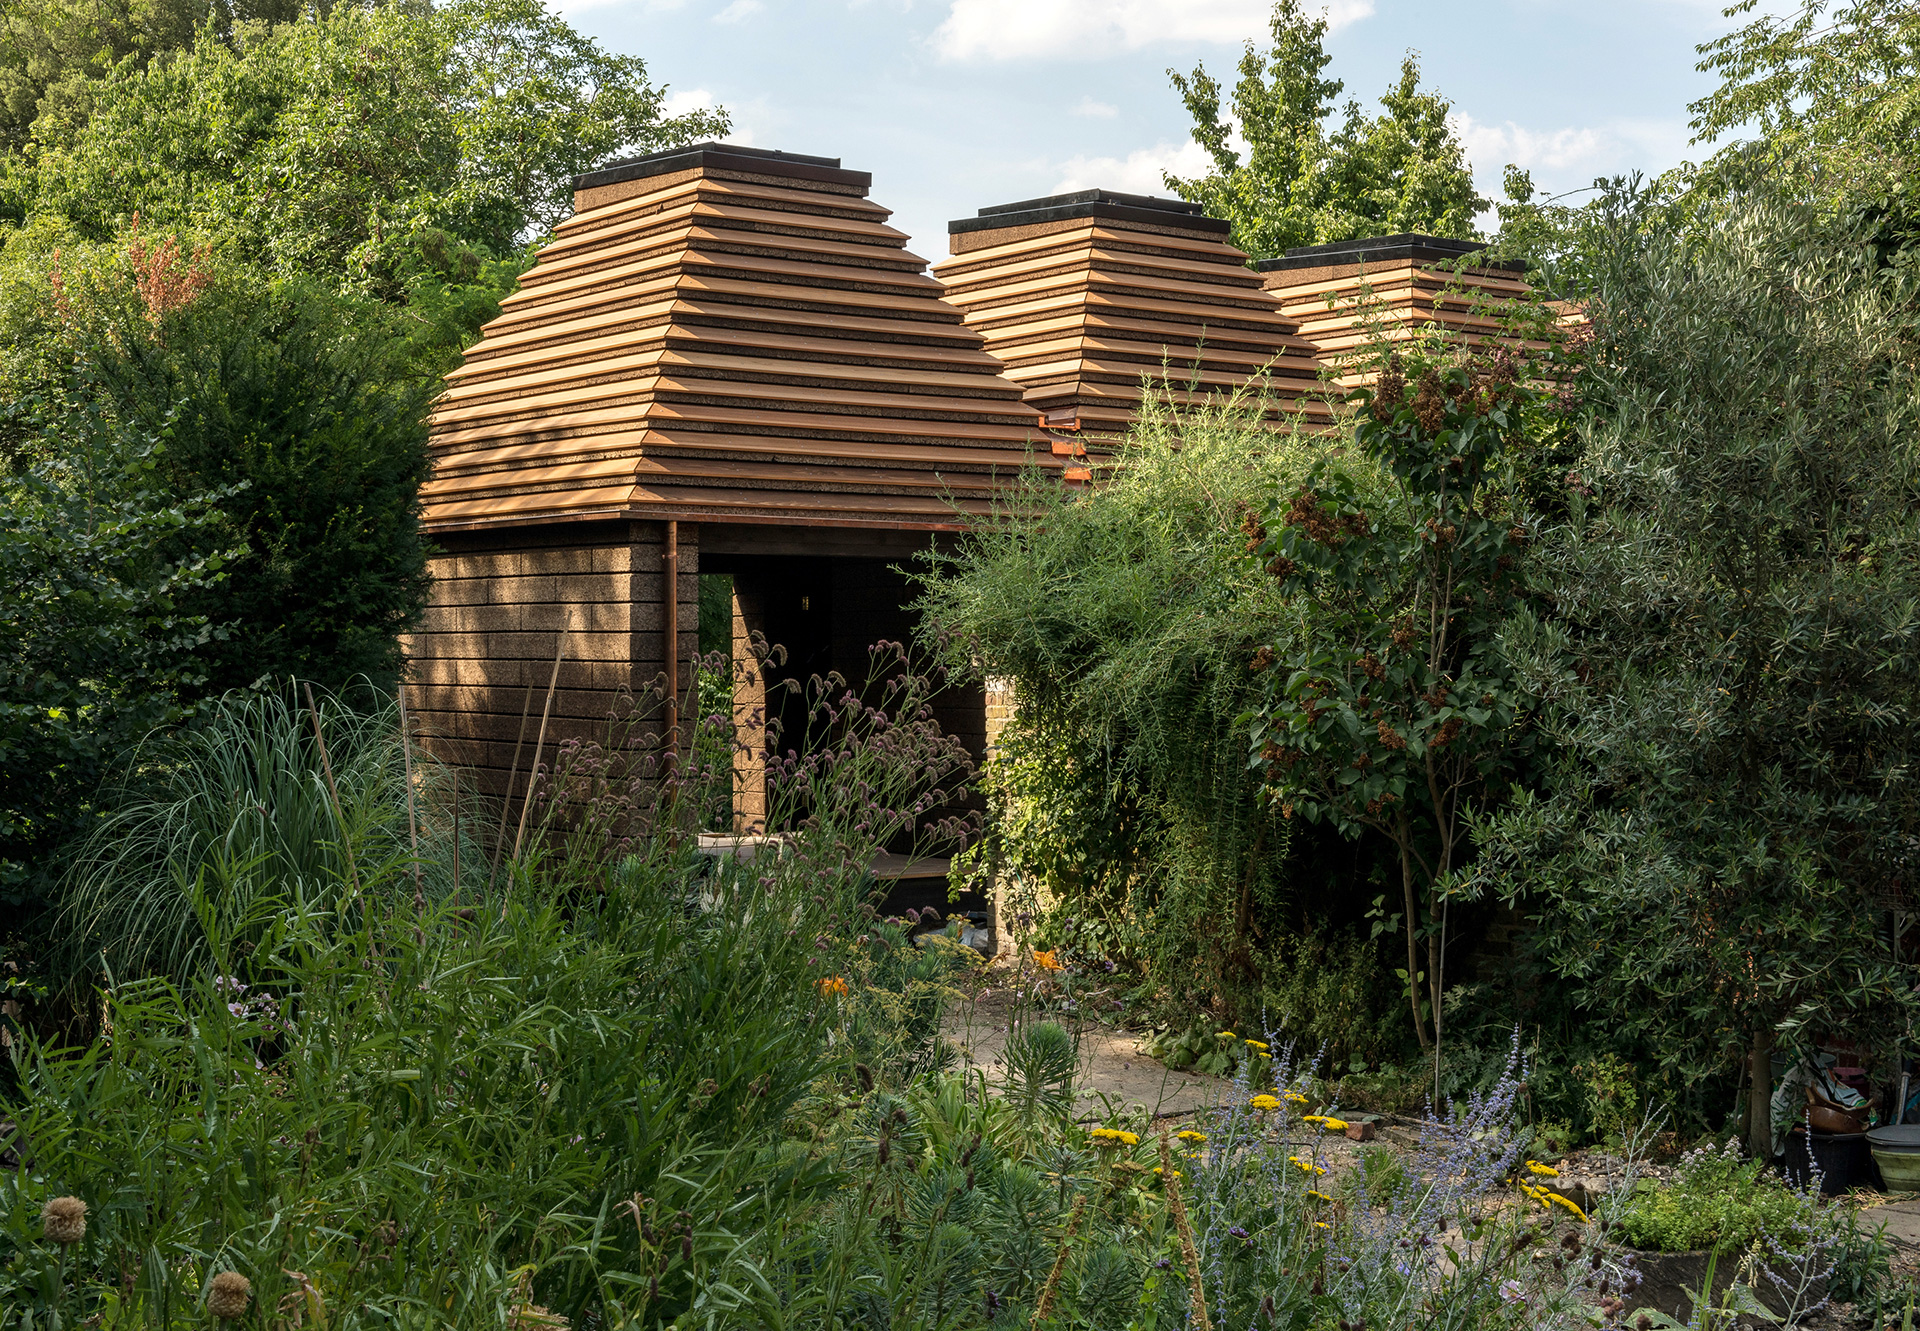 Cork House - an experimental, organic design by Matthew Barnett Howland (with Dido Milne and Oliver Wilton)| Matthew Barnett Howland | Dido Milne| Oliver Wilton| The Cork House| RIBA Stirling Prize 2019| STIR